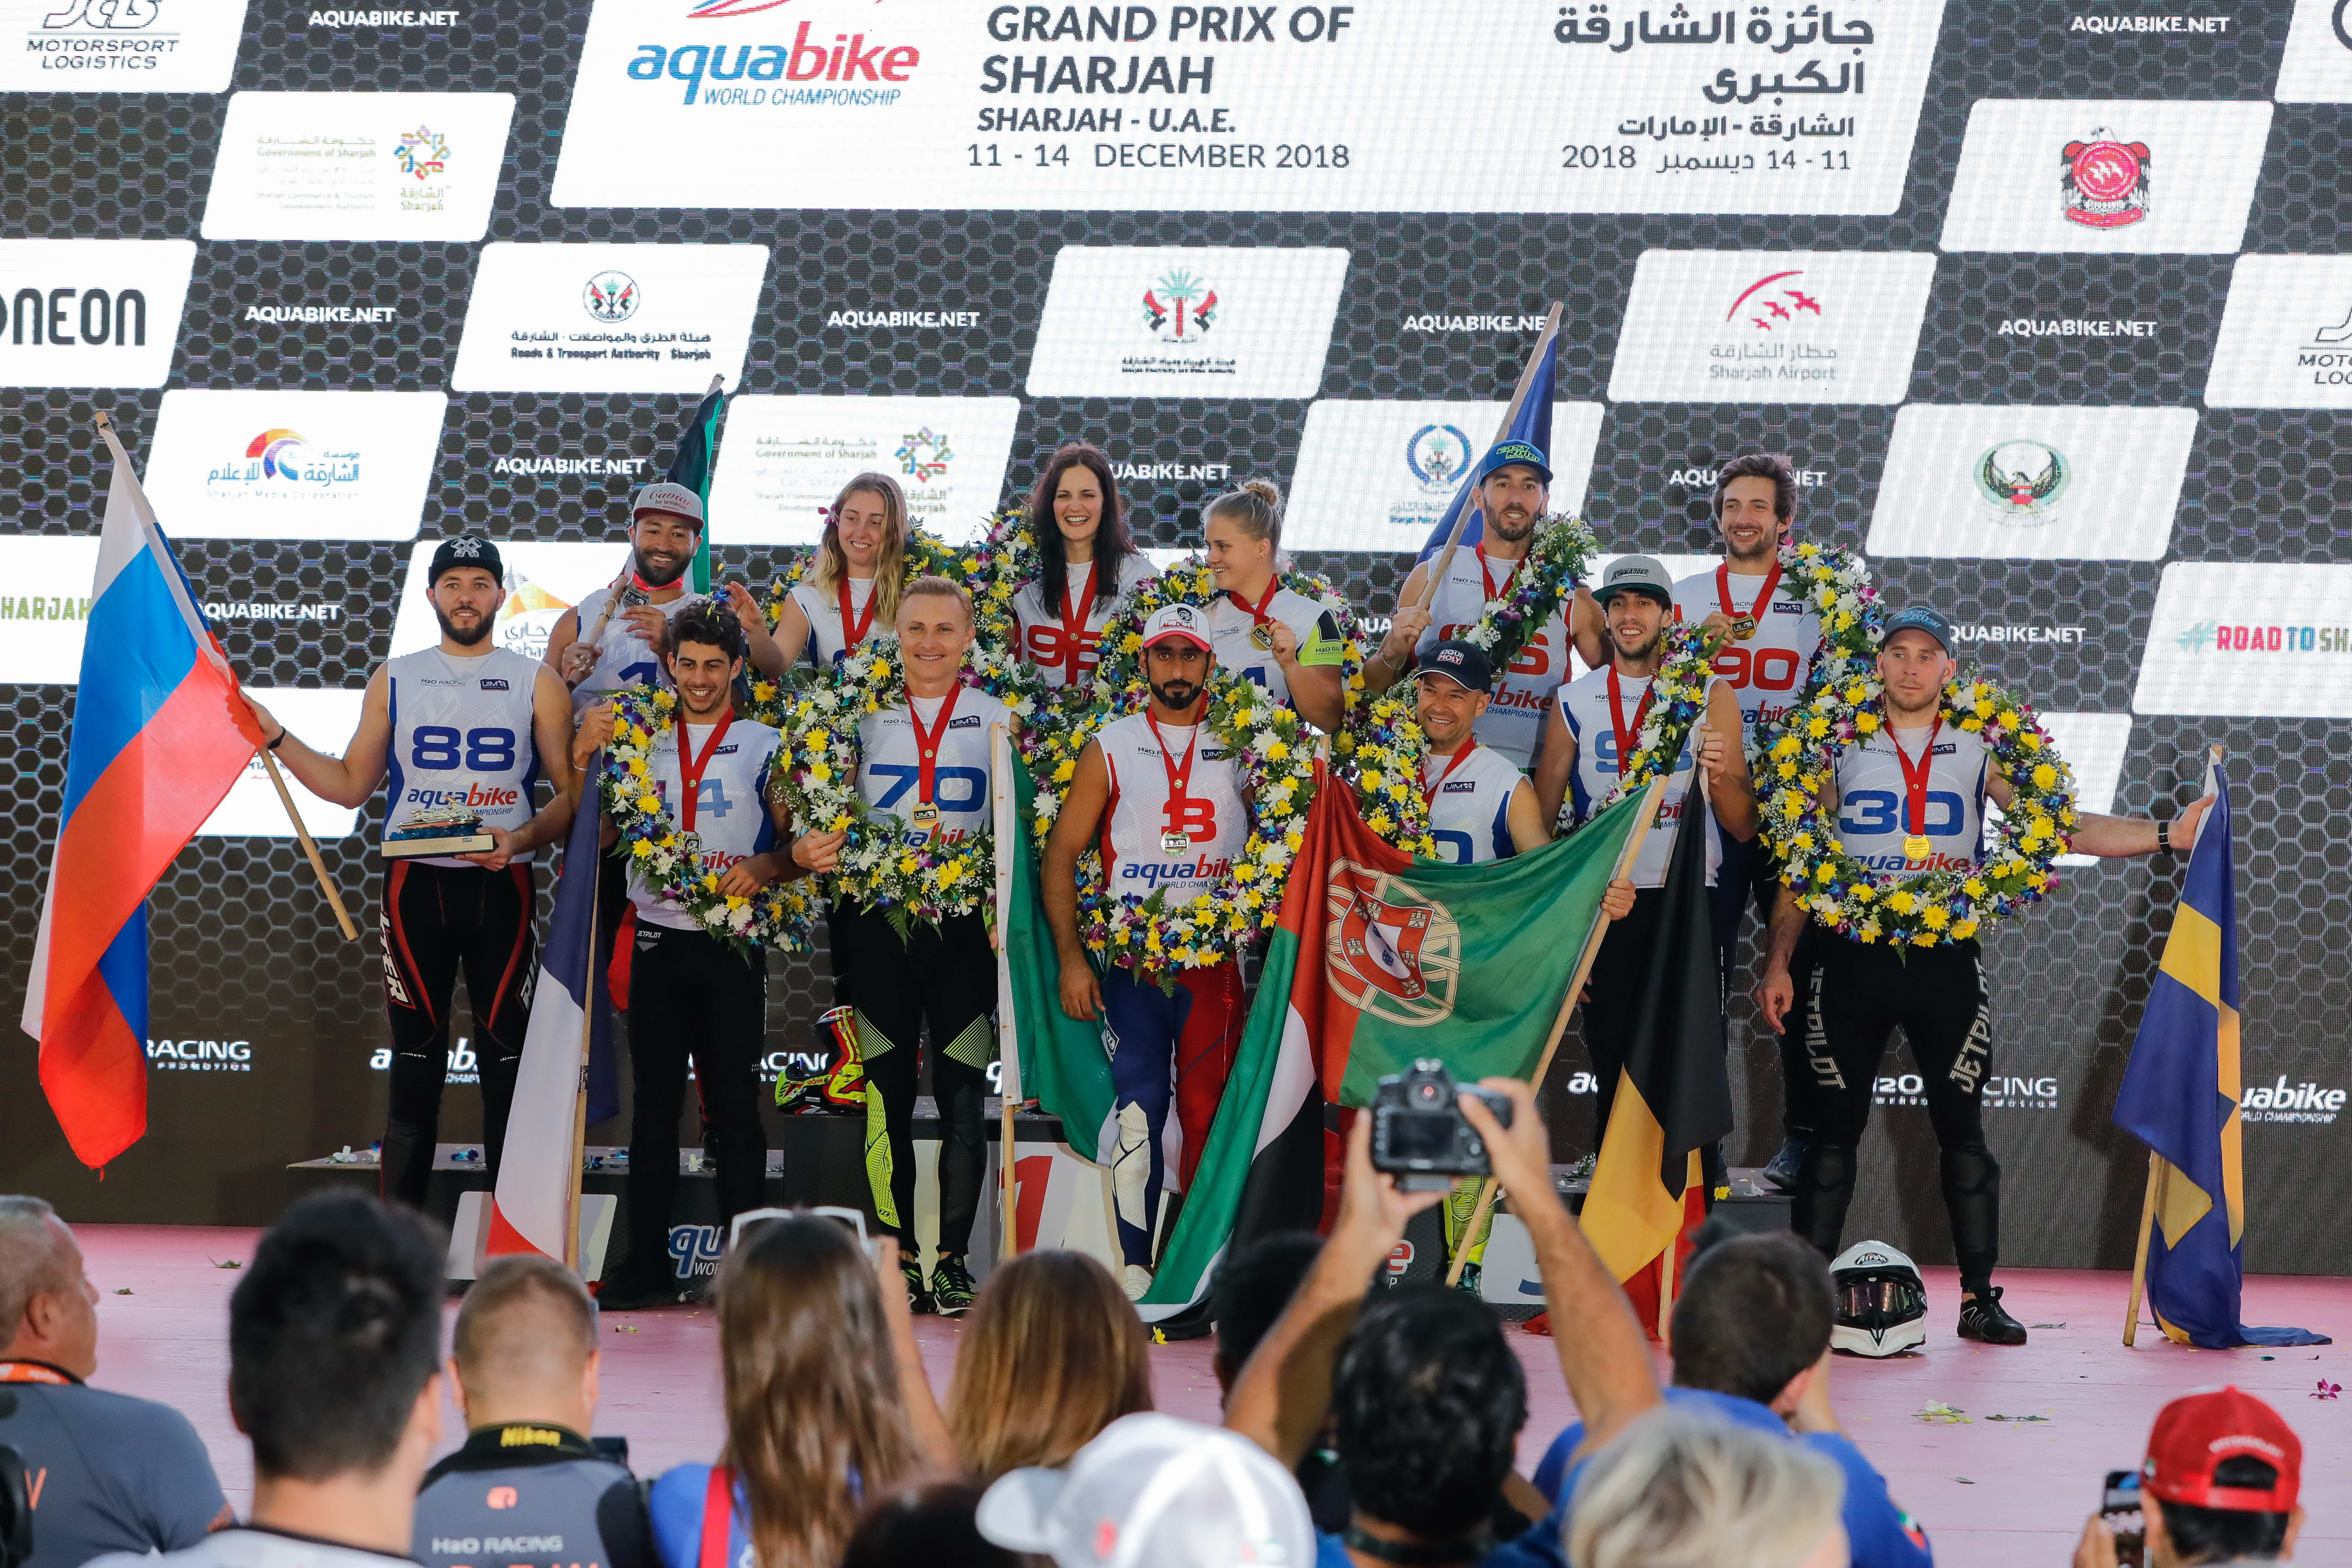 JEREMY PEREZ WINS WORLD CHAMPIONSHIP WITH OVERALL VICTORY IN SHARJAH GRAND PRIX IN RUNABOUT